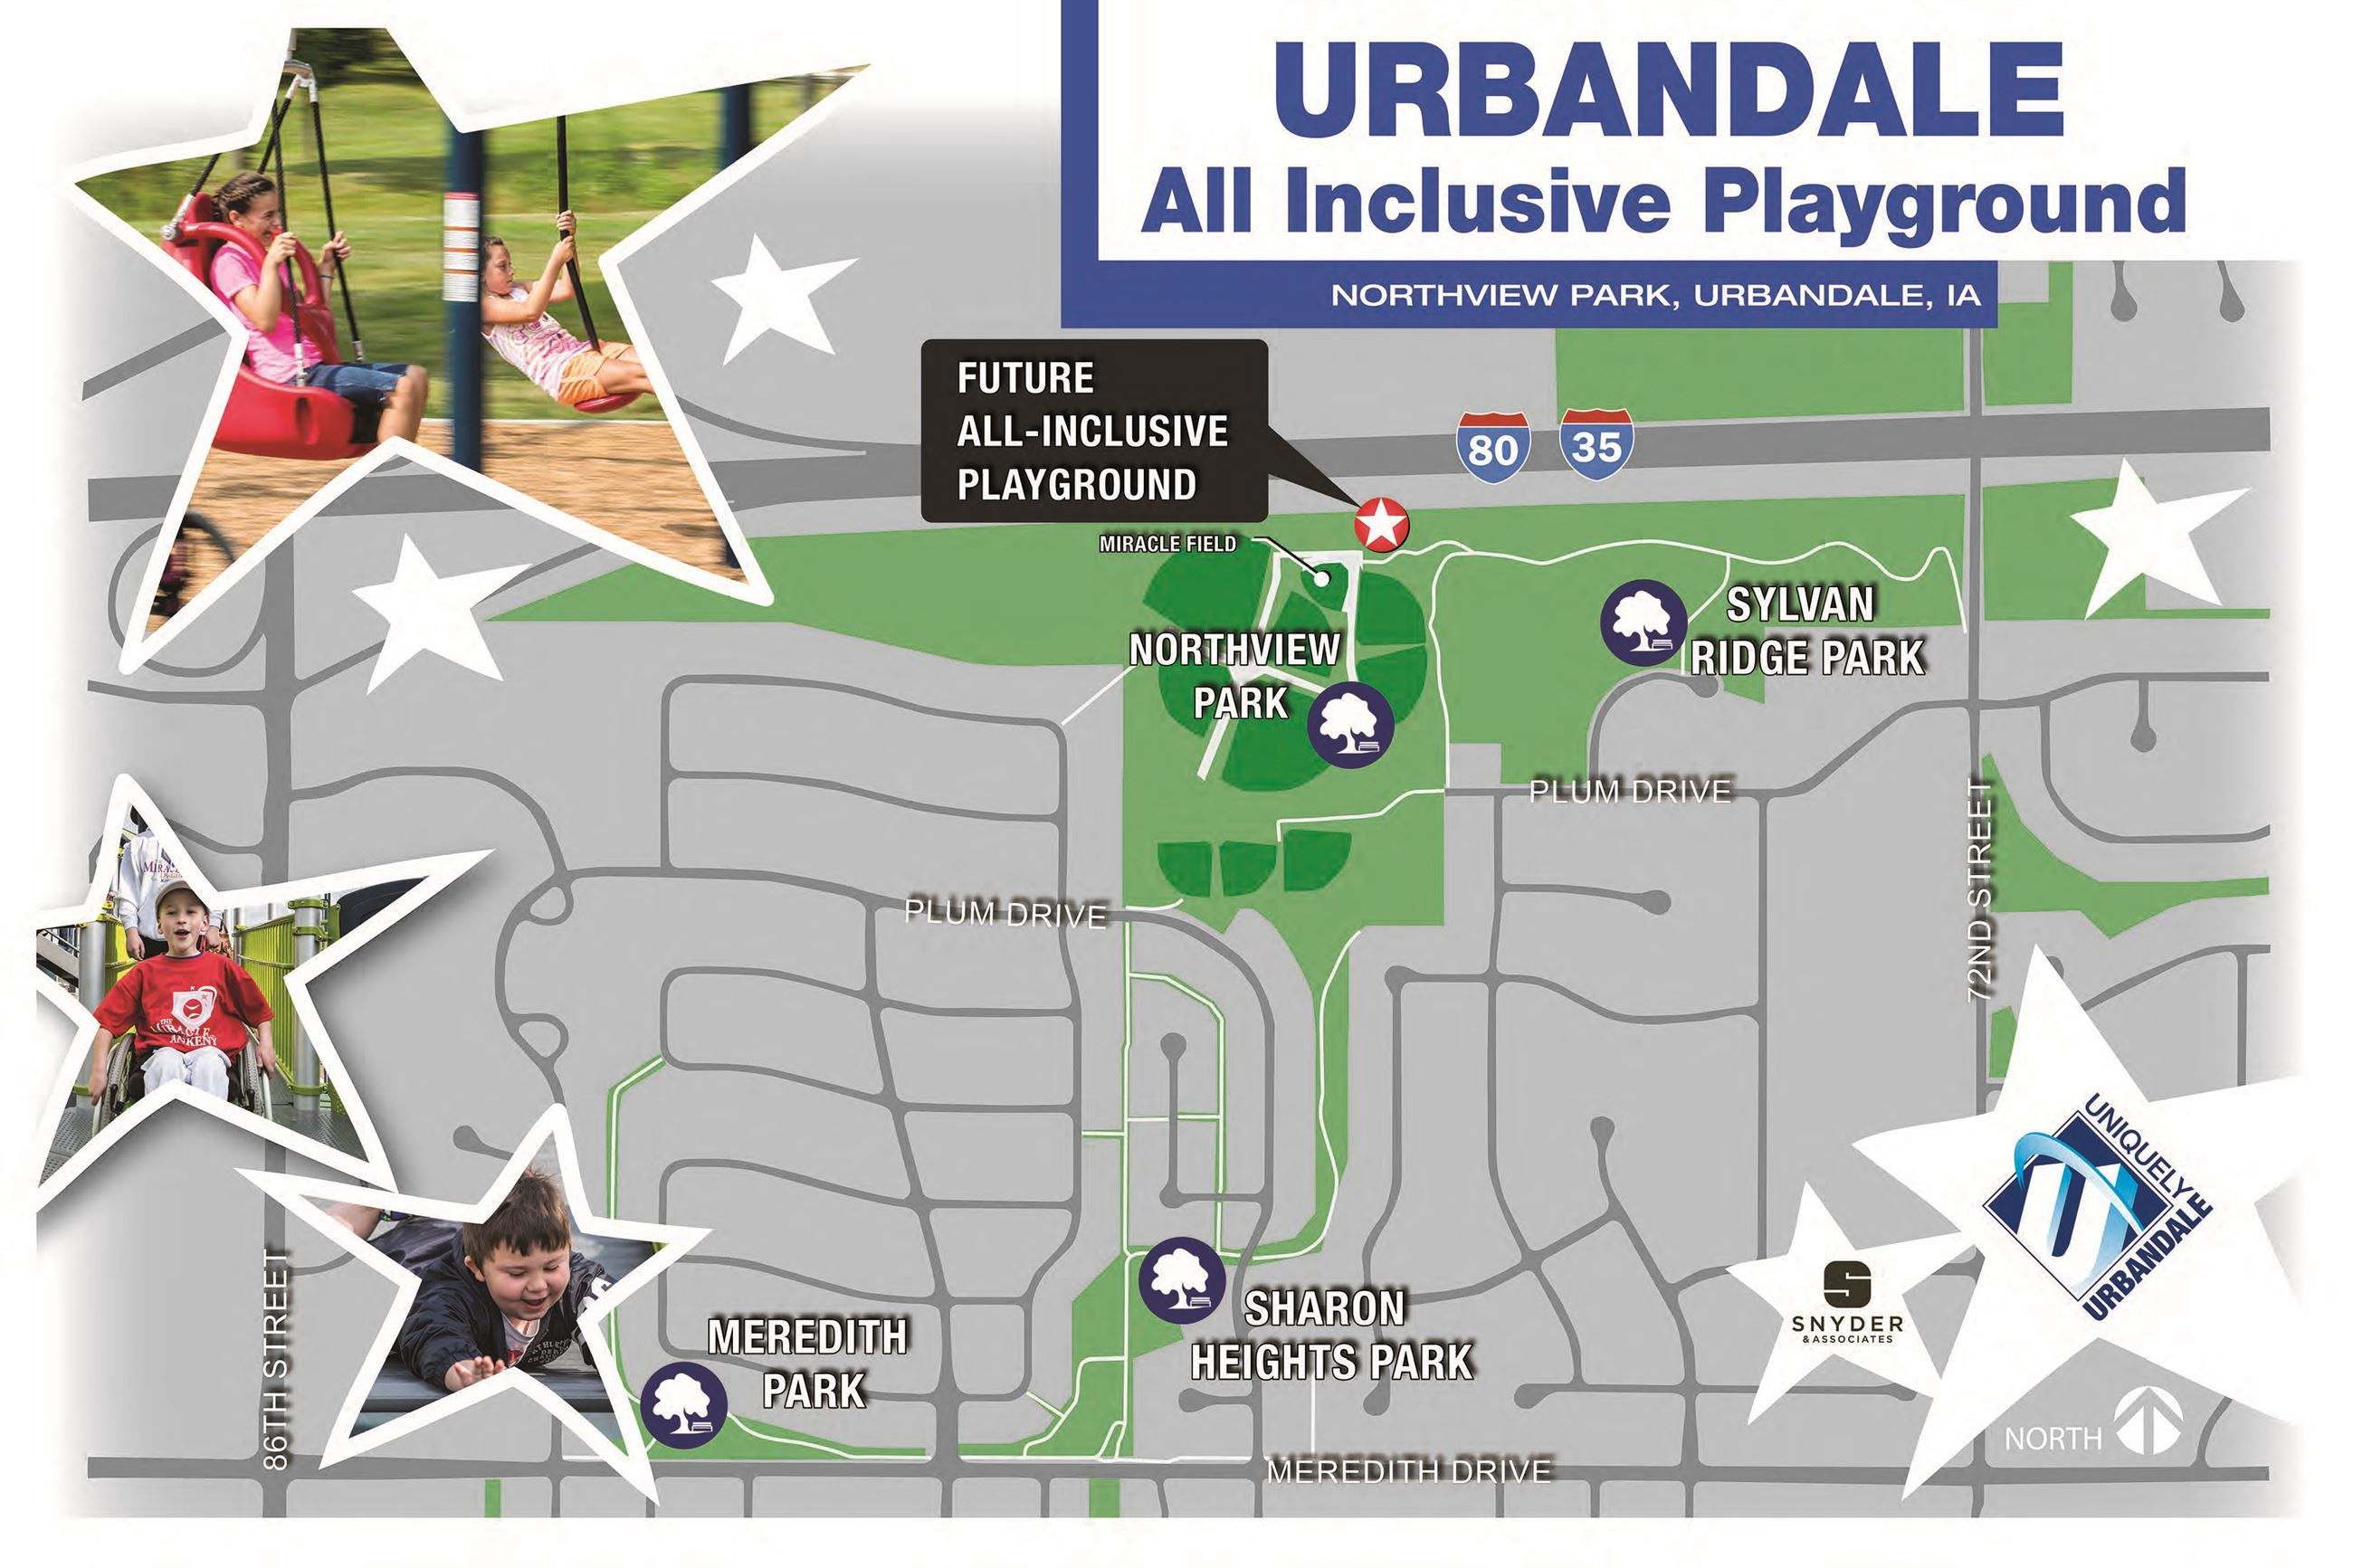 Urbandale-Inclusive Playground Sketch Location